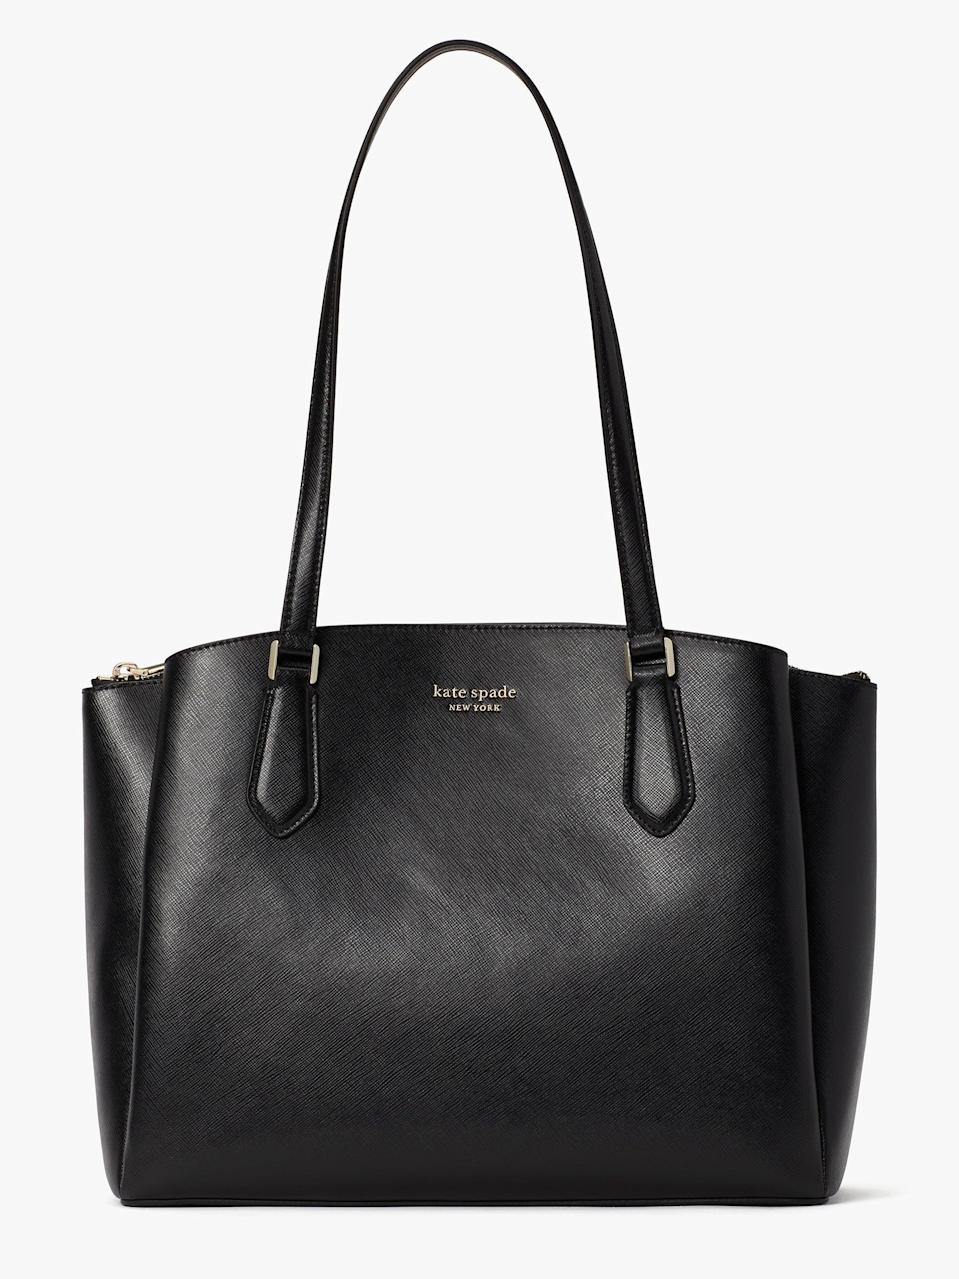 """<h2>Kate Spade</h2><br><strong>Sale:</strong> Up to 60% off sale styles<br><strong>Dates:</strong> Now - January 18 11:59pm<br><strong>Promo Code:</strong> THISISIT<br><br><em>Shop</em> <strong><em><a href=""""http://katespade.com"""" rel=""""nofollow noopener"""" target=""""_blank"""" data-ylk=""""slk:Kate Spade"""" class=""""link rapid-noclick-resp"""">Kate Spade</a></em></strong><br><br><strong>Kate Spade</strong> Booked Large Work Tote, $, available at <a href=""""https://go.skimresources.com/?id=30283X879131&url=https%3A%2F%2Fwww.katespade.com%2Fproducts%2Fbooked-large-work-tote%2FPXR00332.html"""" rel=""""nofollow noopener"""" target=""""_blank"""" data-ylk=""""slk:kate spade"""" class=""""link rapid-noclick-resp"""">kate spade</a>"""